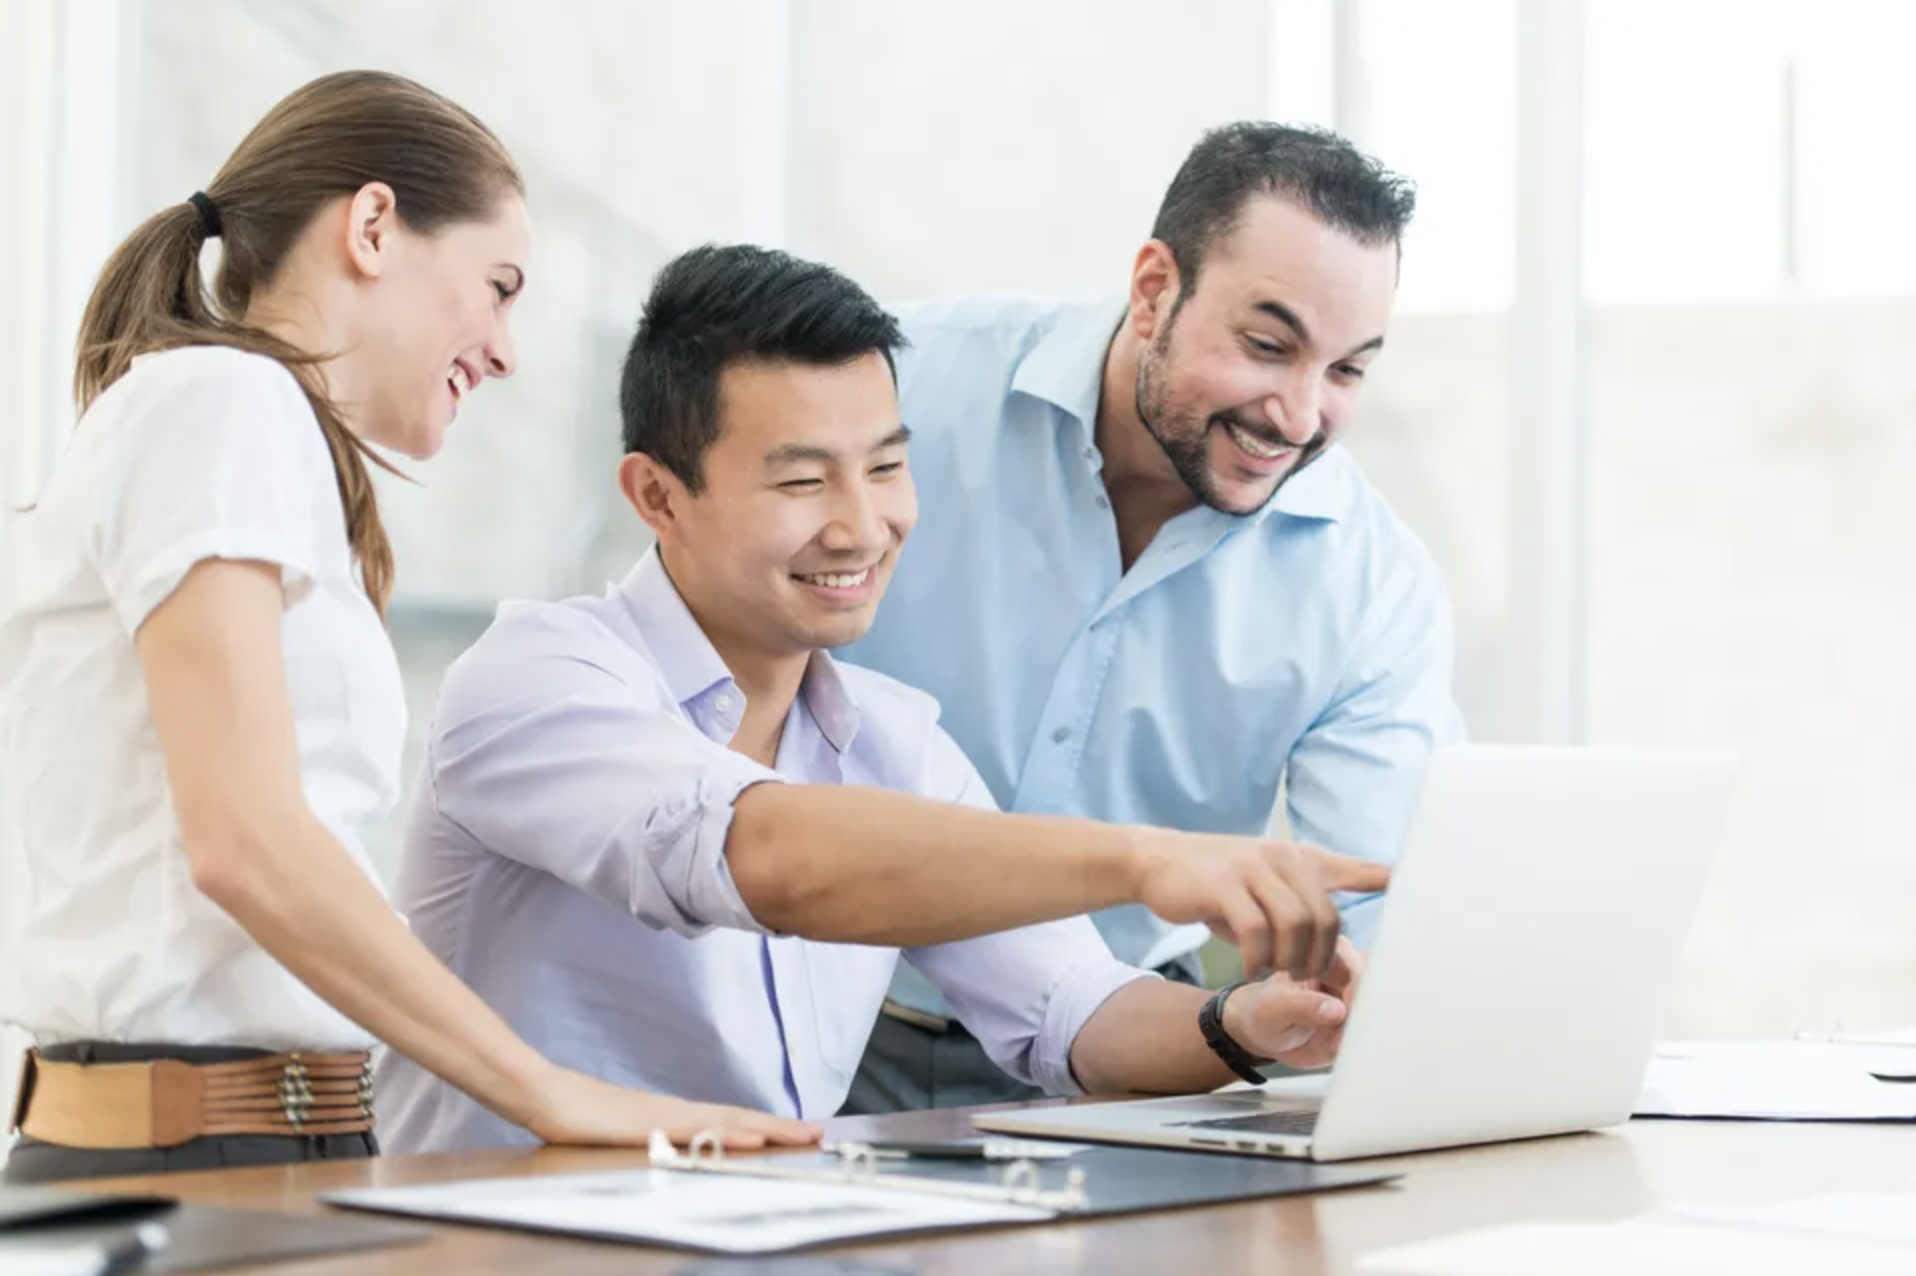 Stock photo of Simu Liu participating in internet research in the office; A multi-ethnic group of business professionals doing internet research and are surfing the web together in the office.